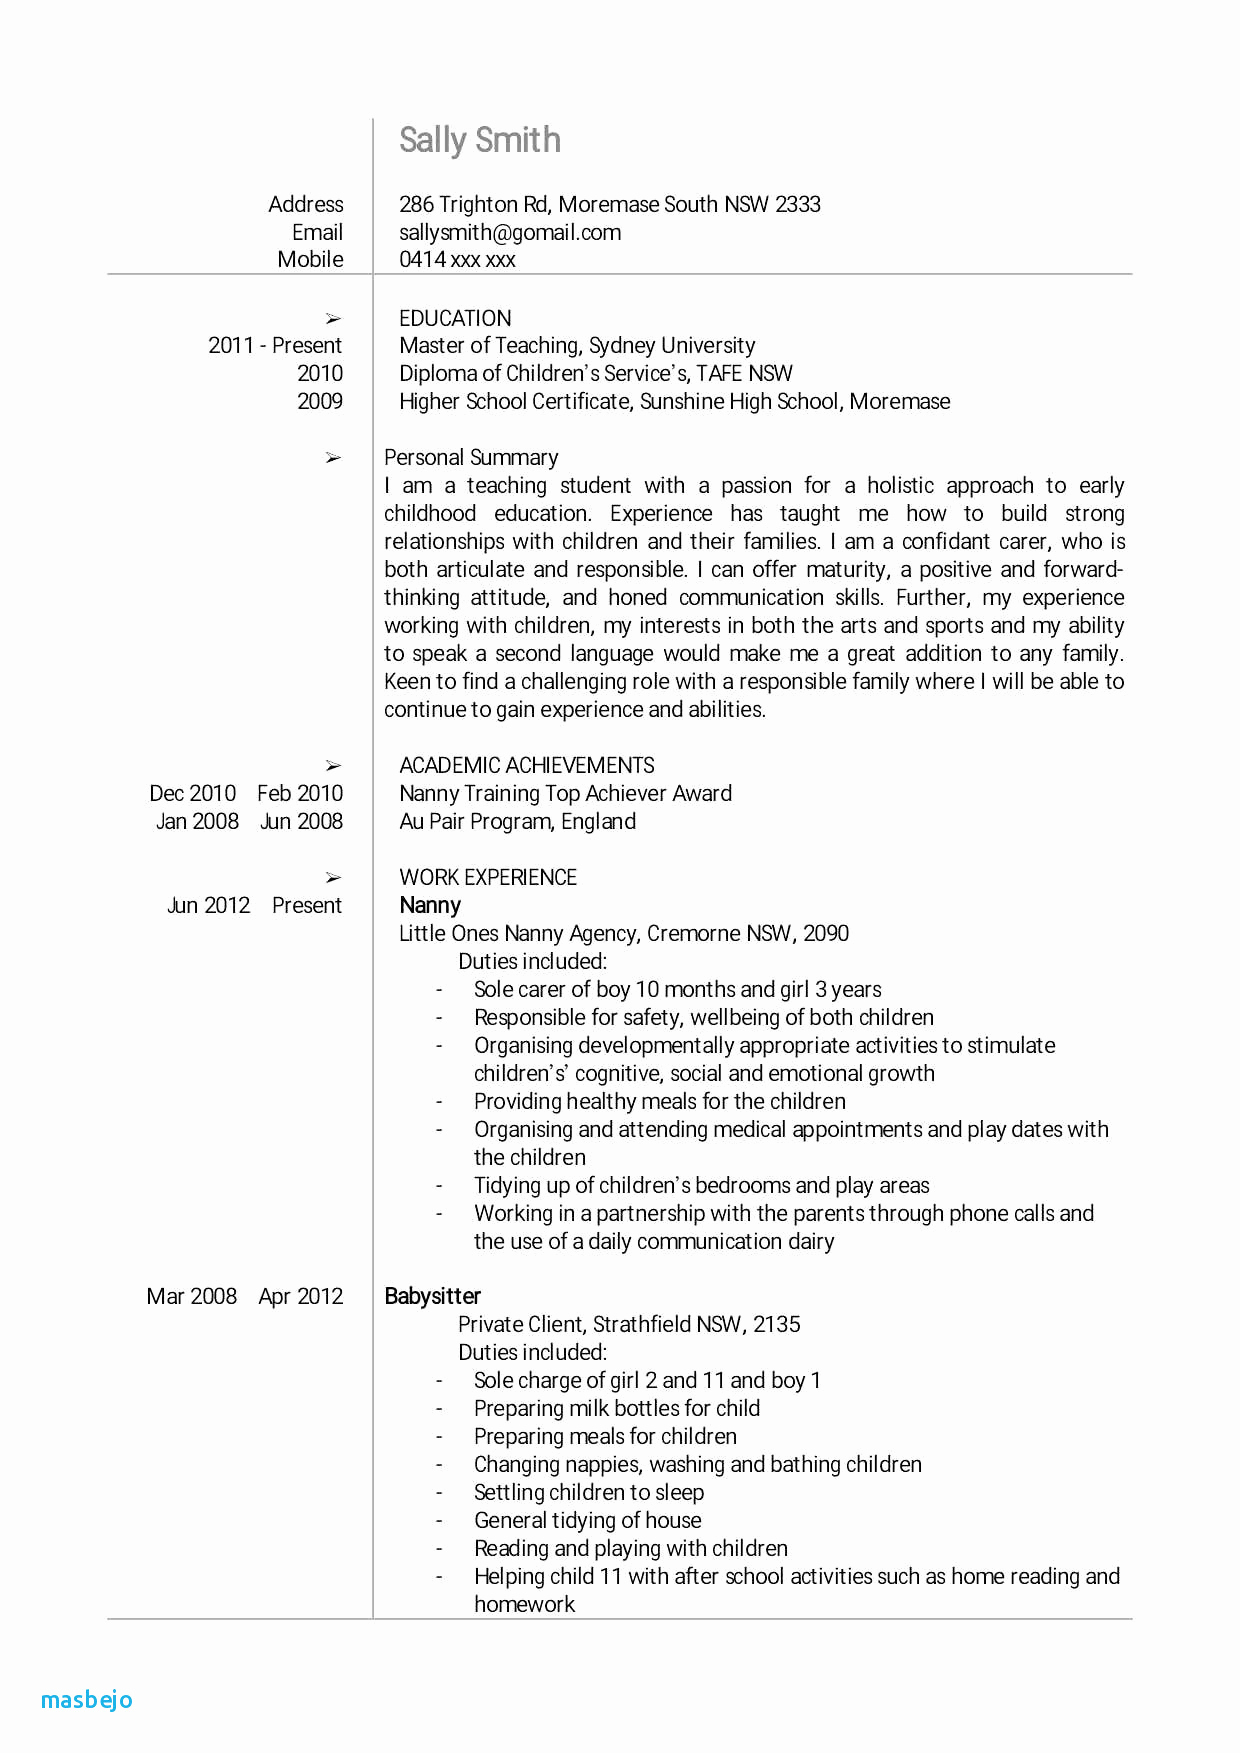 Babysitting Resume Examples - Resume for Baby Sitting Babysitting Resume Examples Babysitter